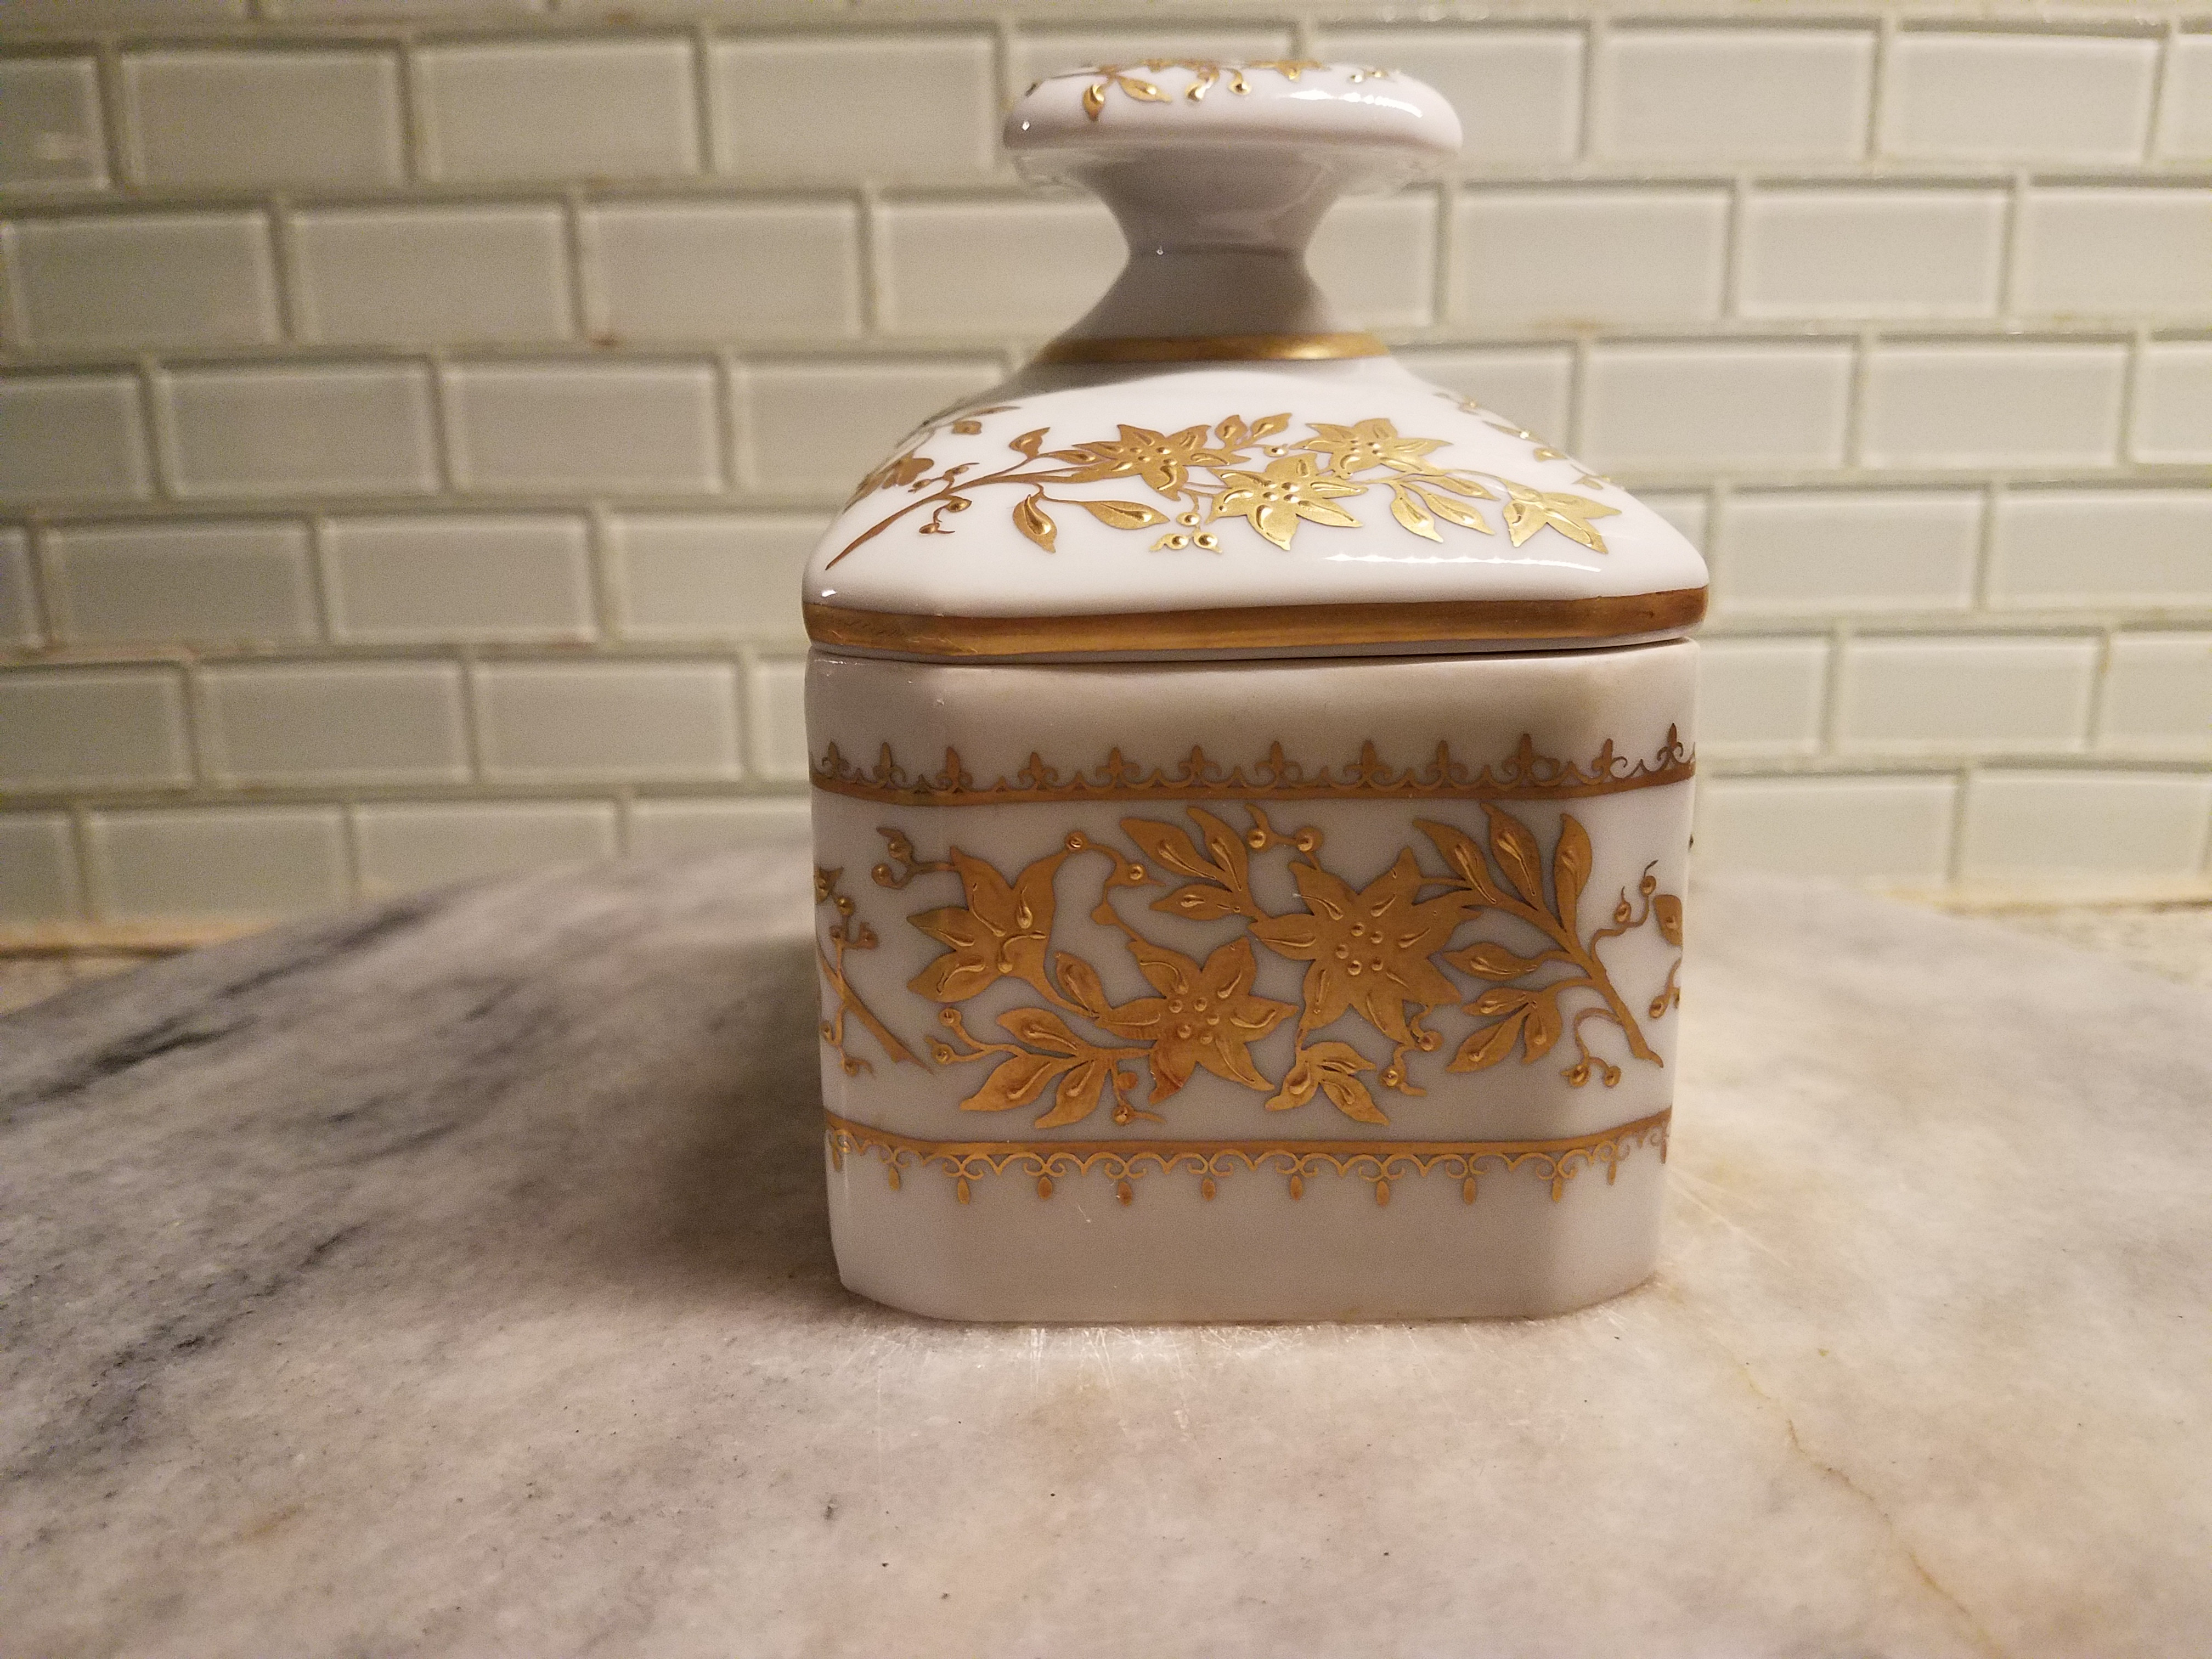 limoges vase prices of limoges candy dish antiques auctions givin charity simplified within limoges candy dish side